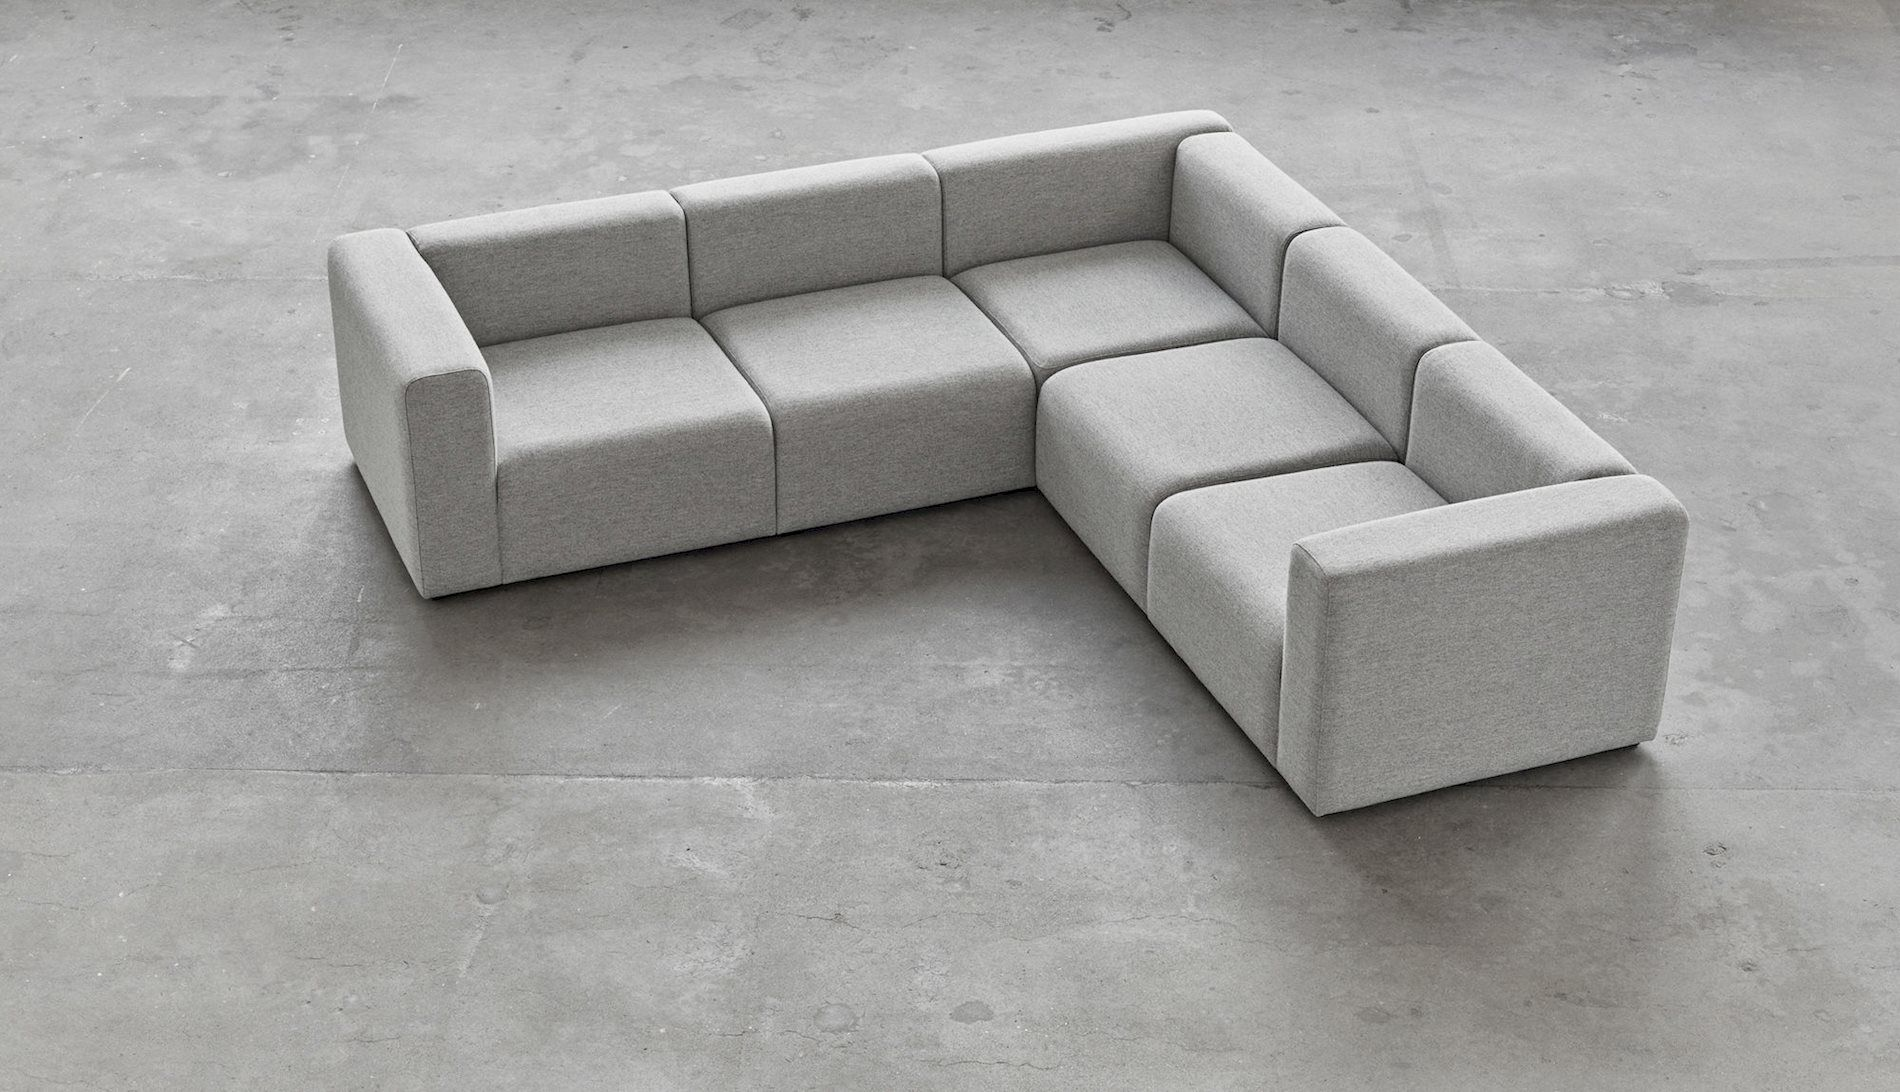 Mags sofa has many upholstery options which enables the